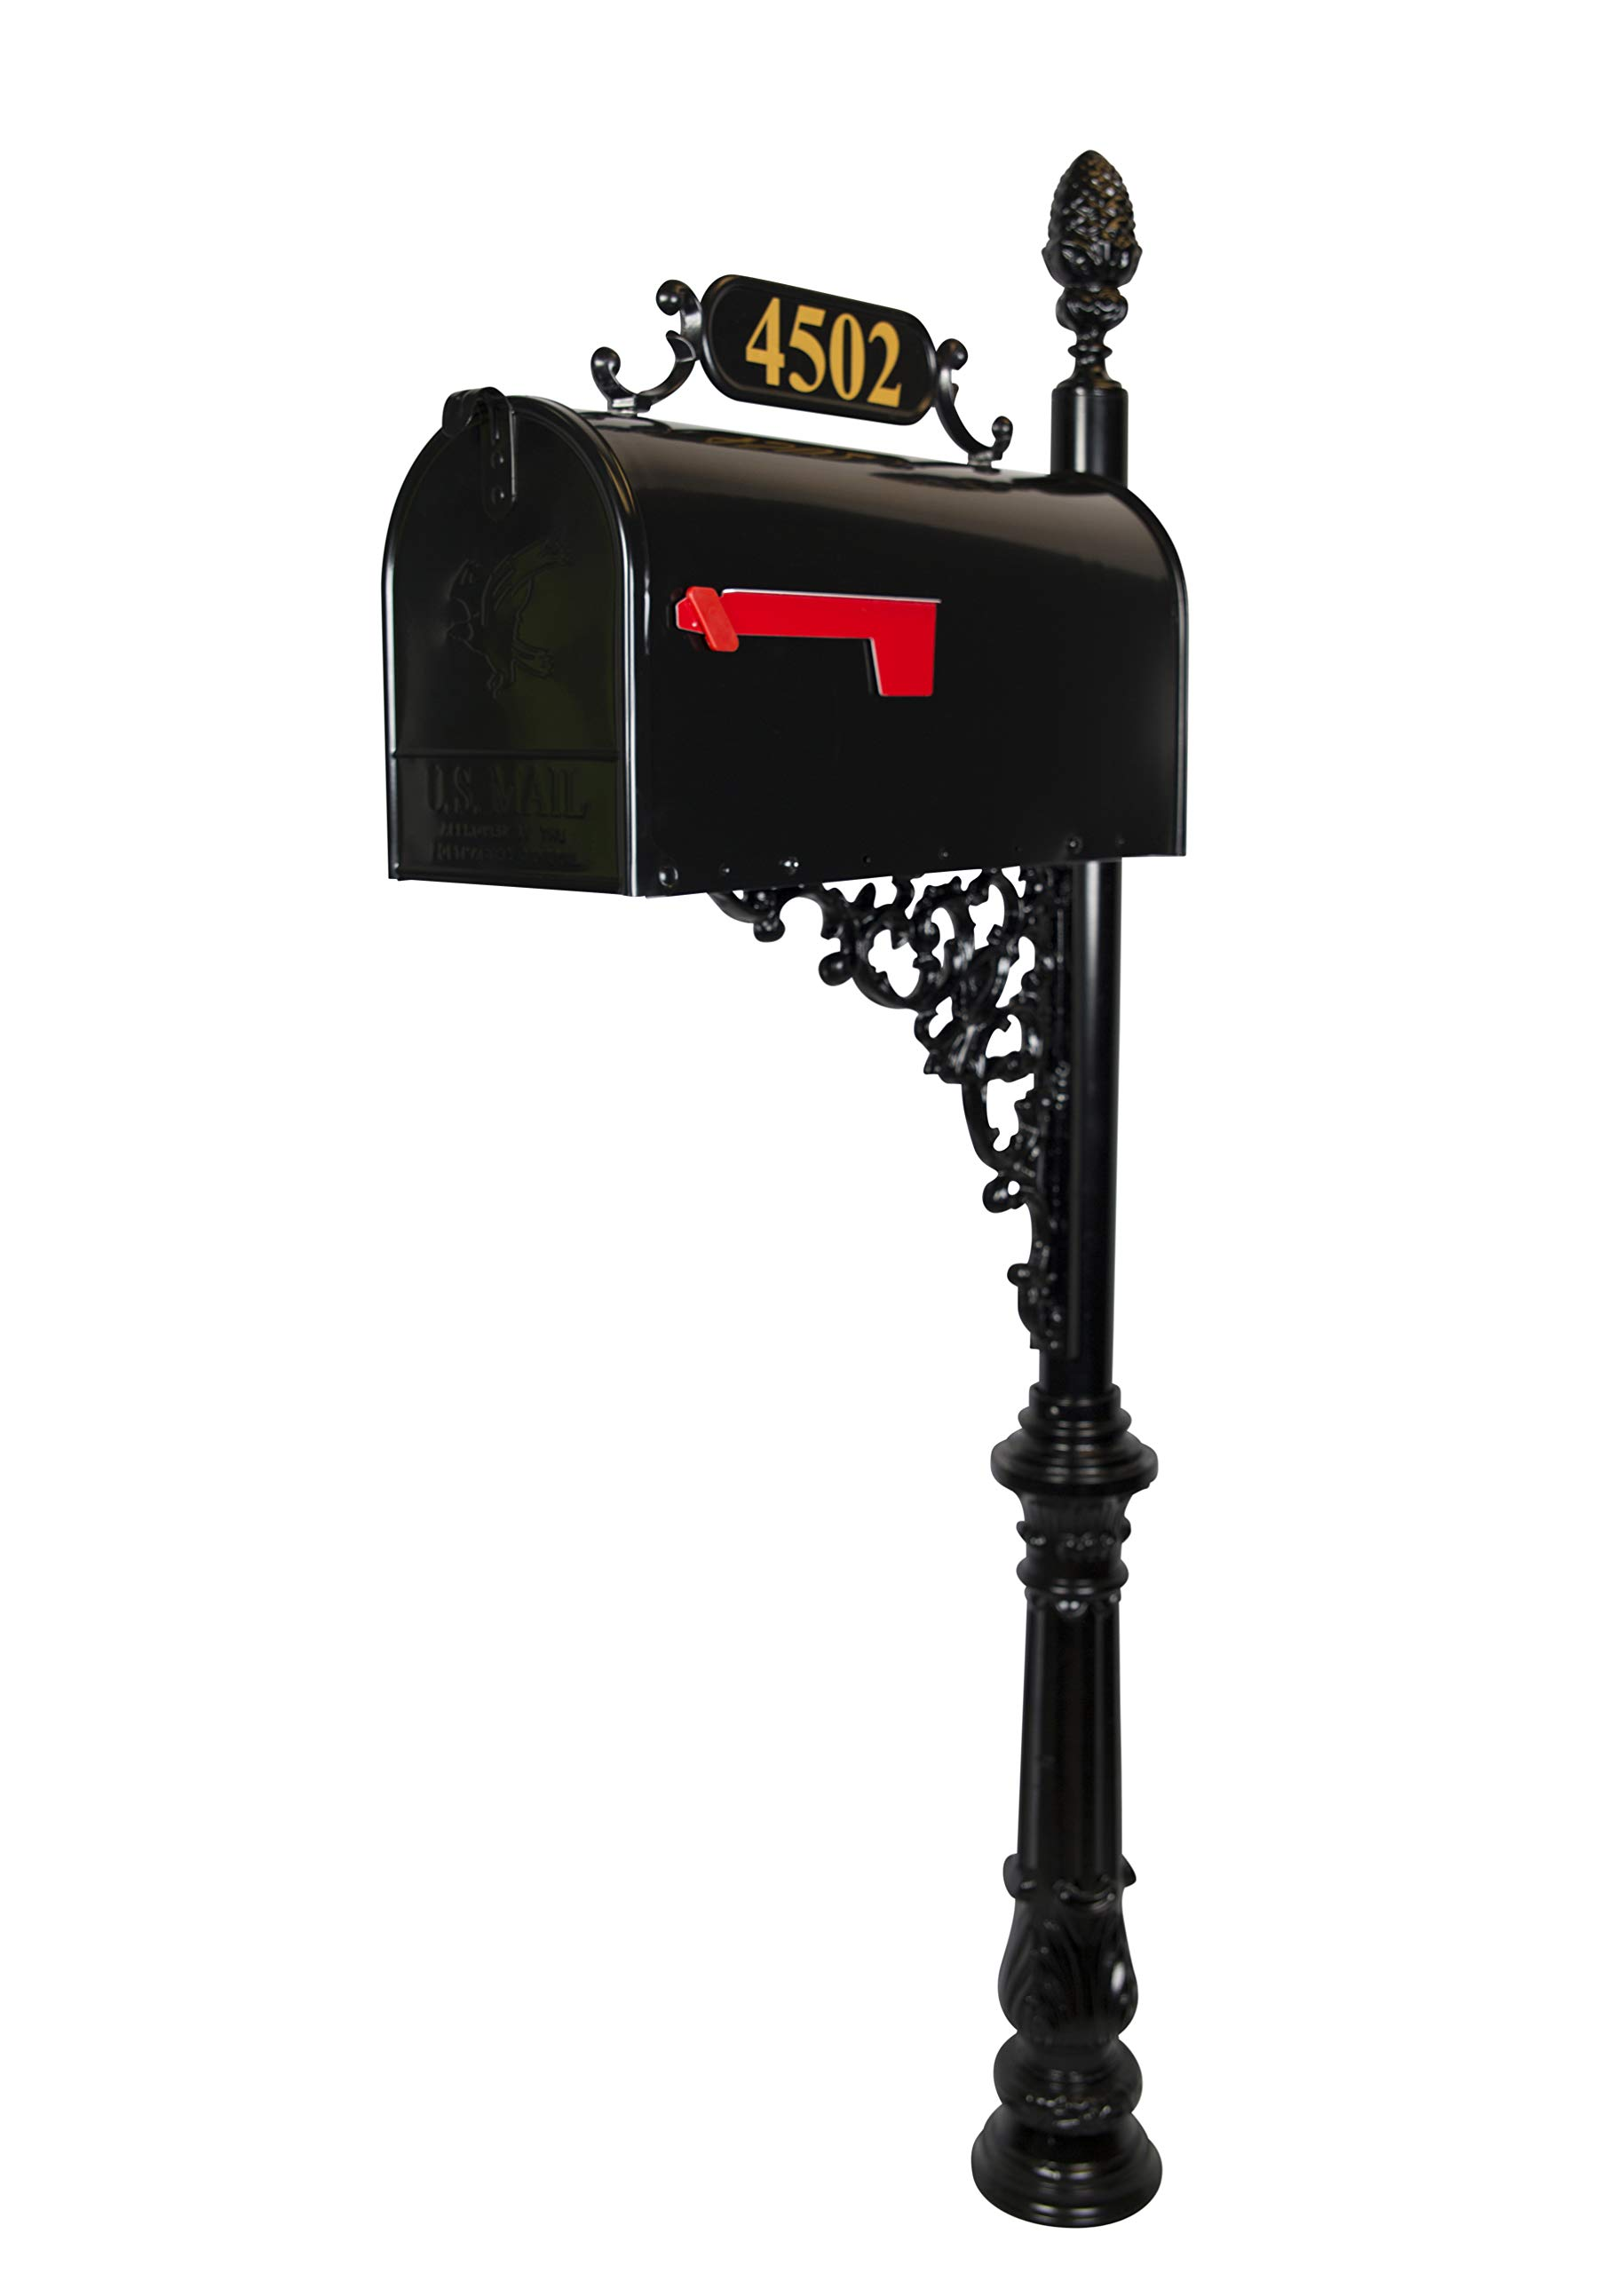 ADDRESSES OF DISTINCTION Magnolia Standard Mailbox & Post System – Black Rust Resistant Mailbox – Includes Plaque, Decorative Bracket, Pineapple Finial & Mounting Hardware - Customized Address Numbers